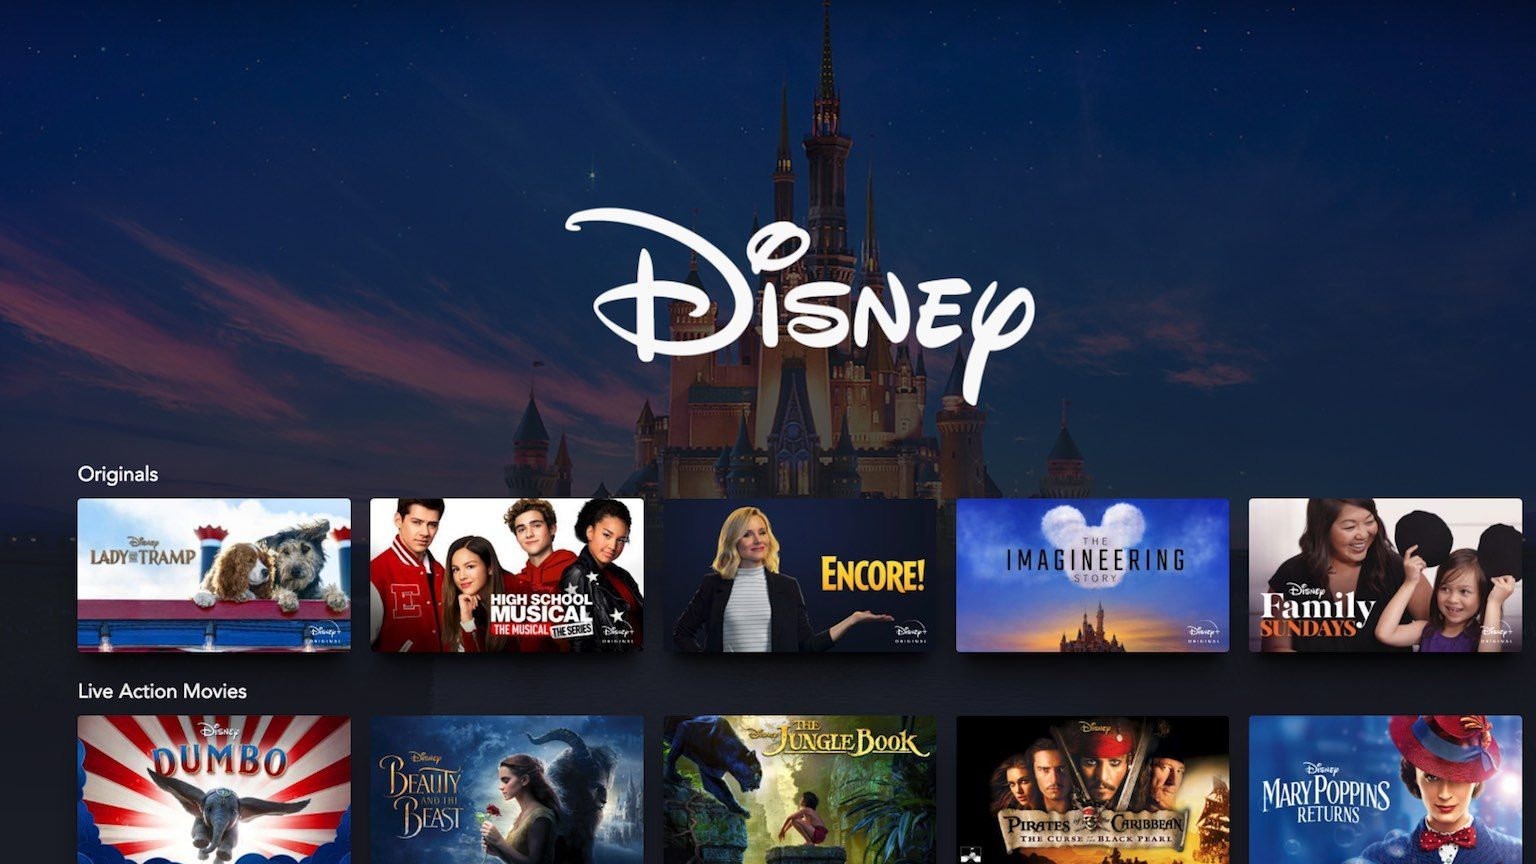 Disney castle overlaid with logo and images of shows